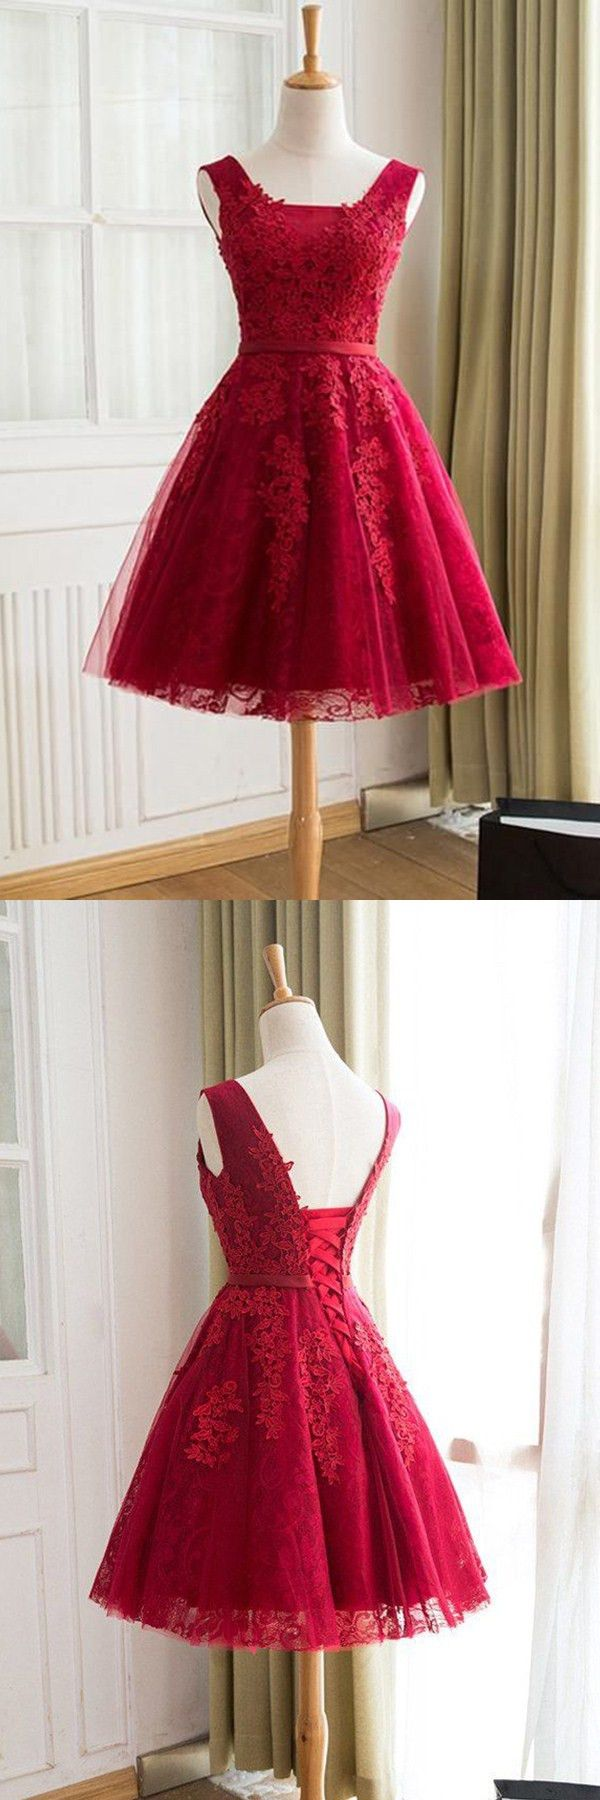 homecoming dresses, 2017 homecoming party dresses, red lace-up party dresses with appliques